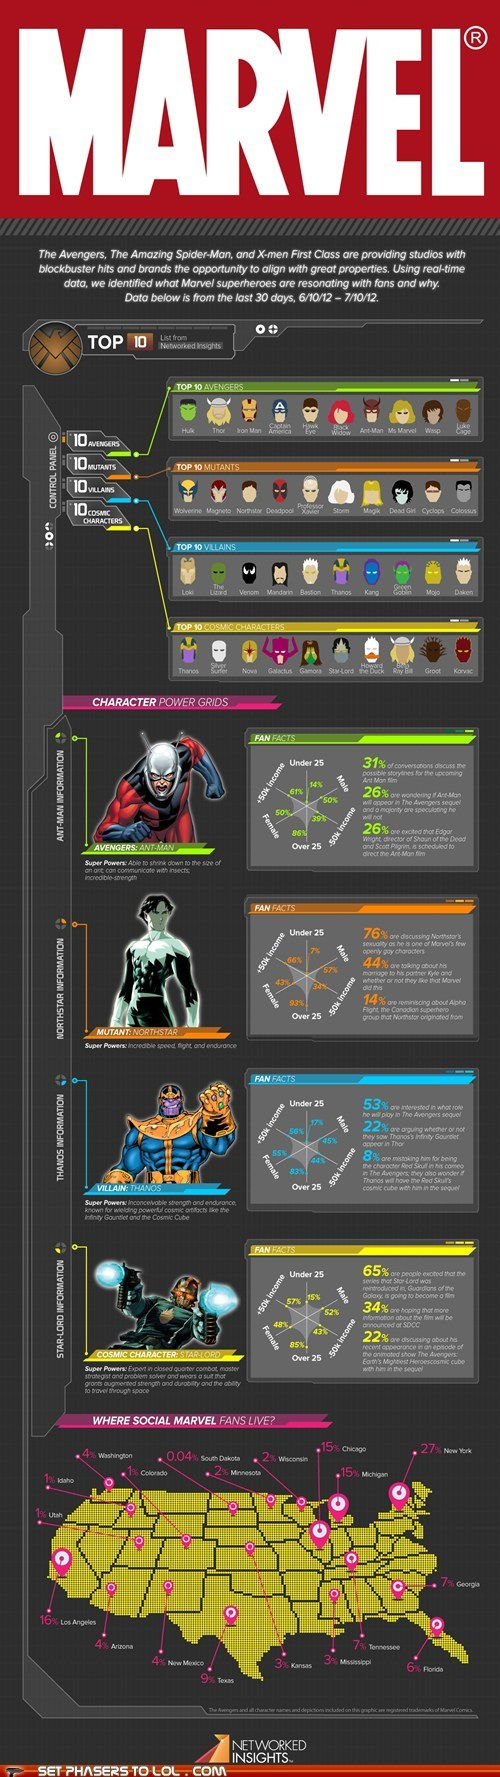 Popularity of Marvel Superheroes